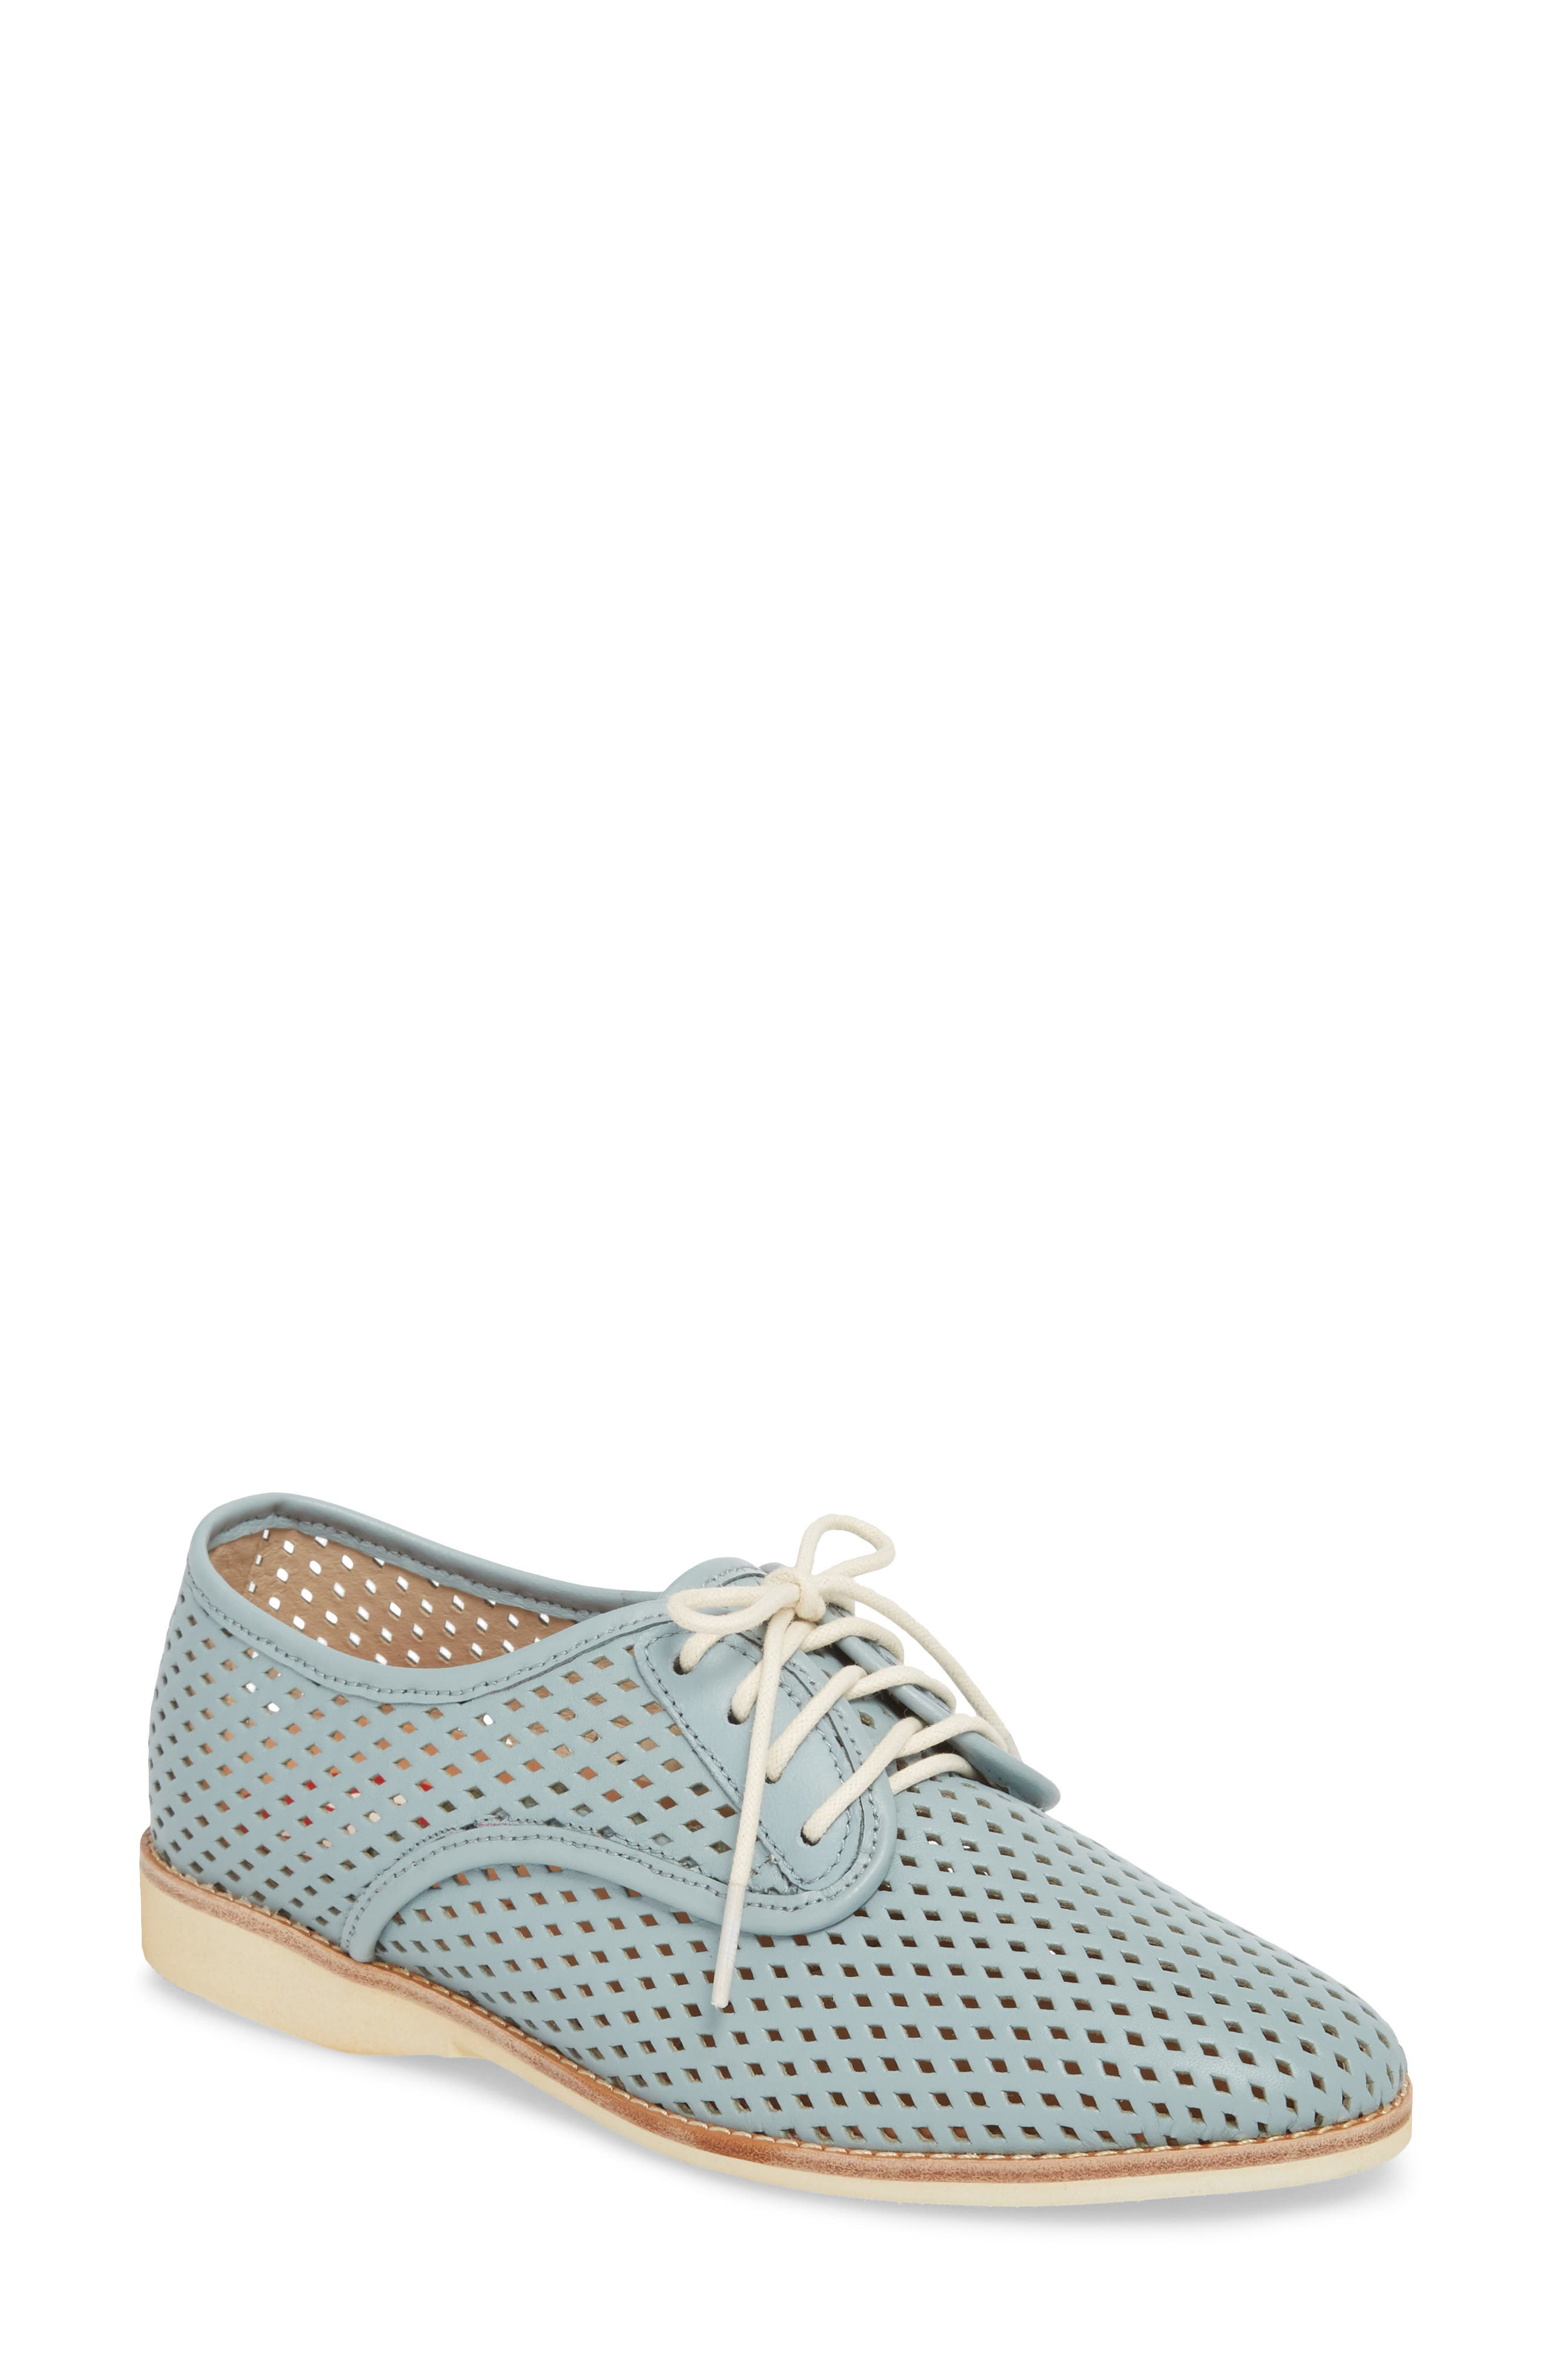 ROLLIE Punch Perforated Derby in Chalk Blue Leather